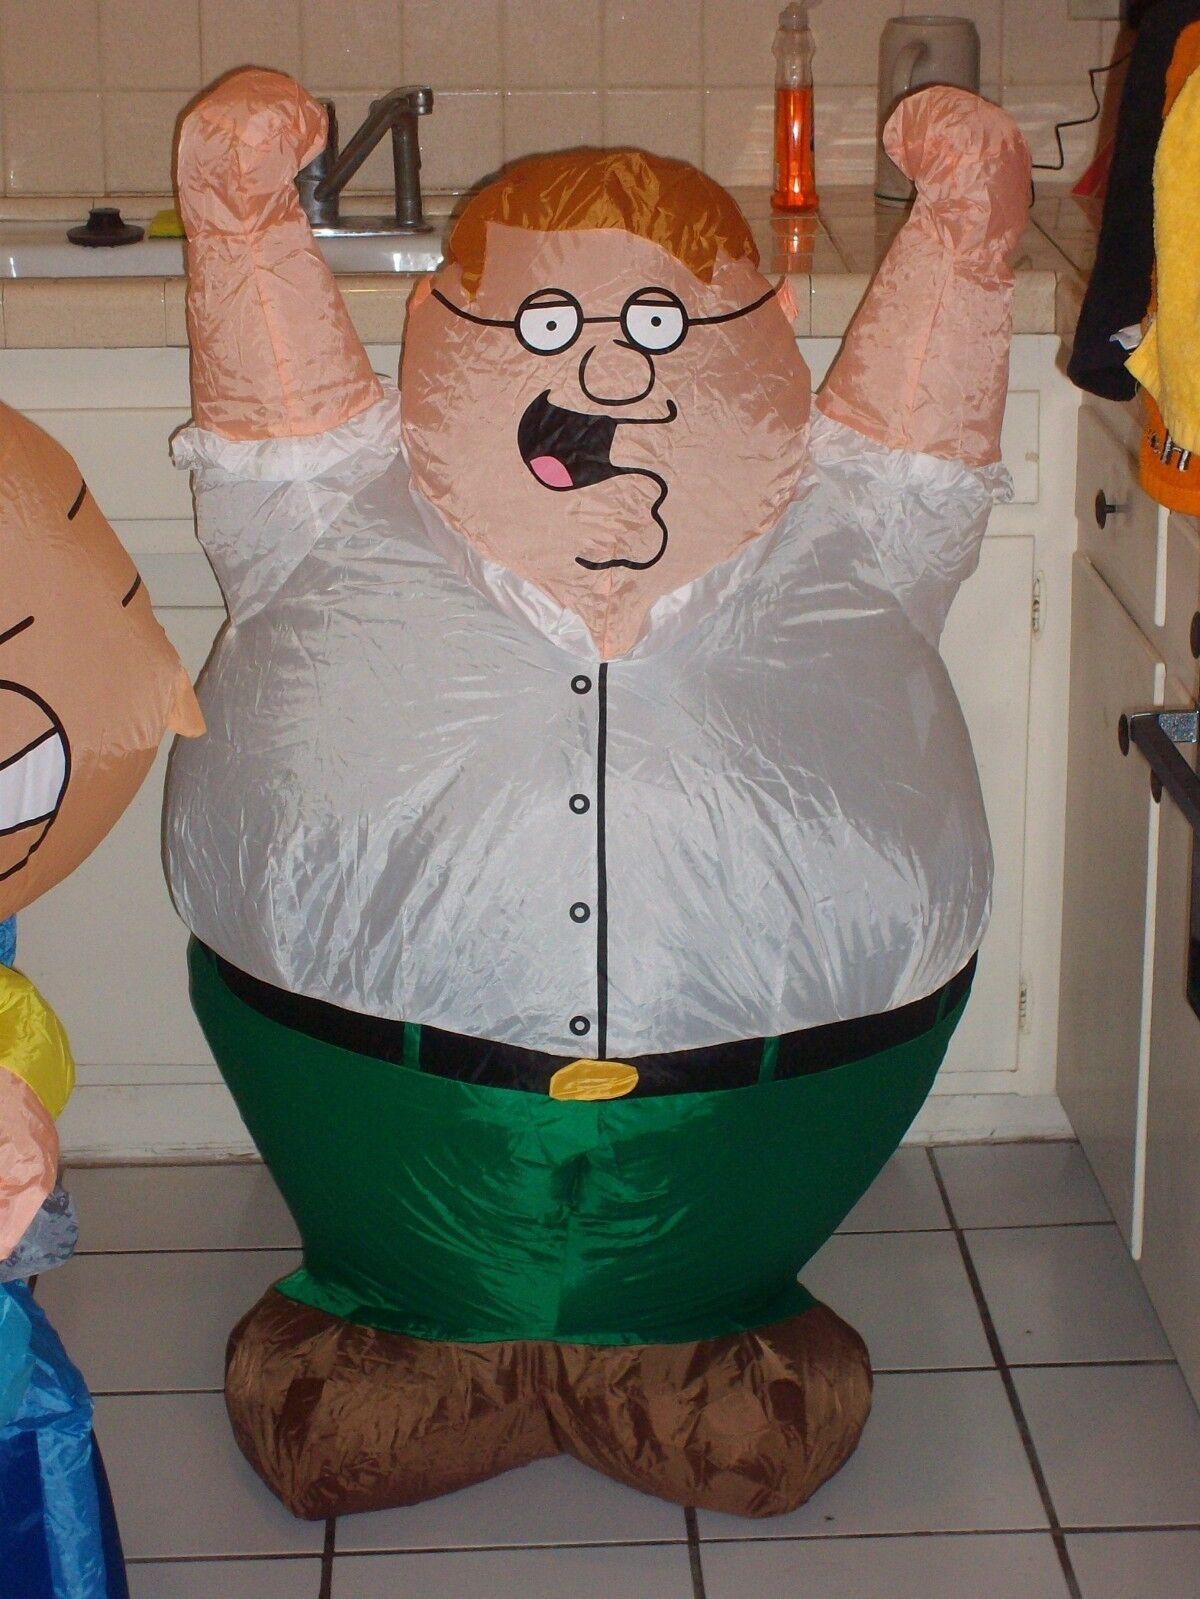 LOT AND OF 2 FAMILY GUY INFLATABLES 2005 GEMMY. STEWIE AND LOT PETER. New. 800776